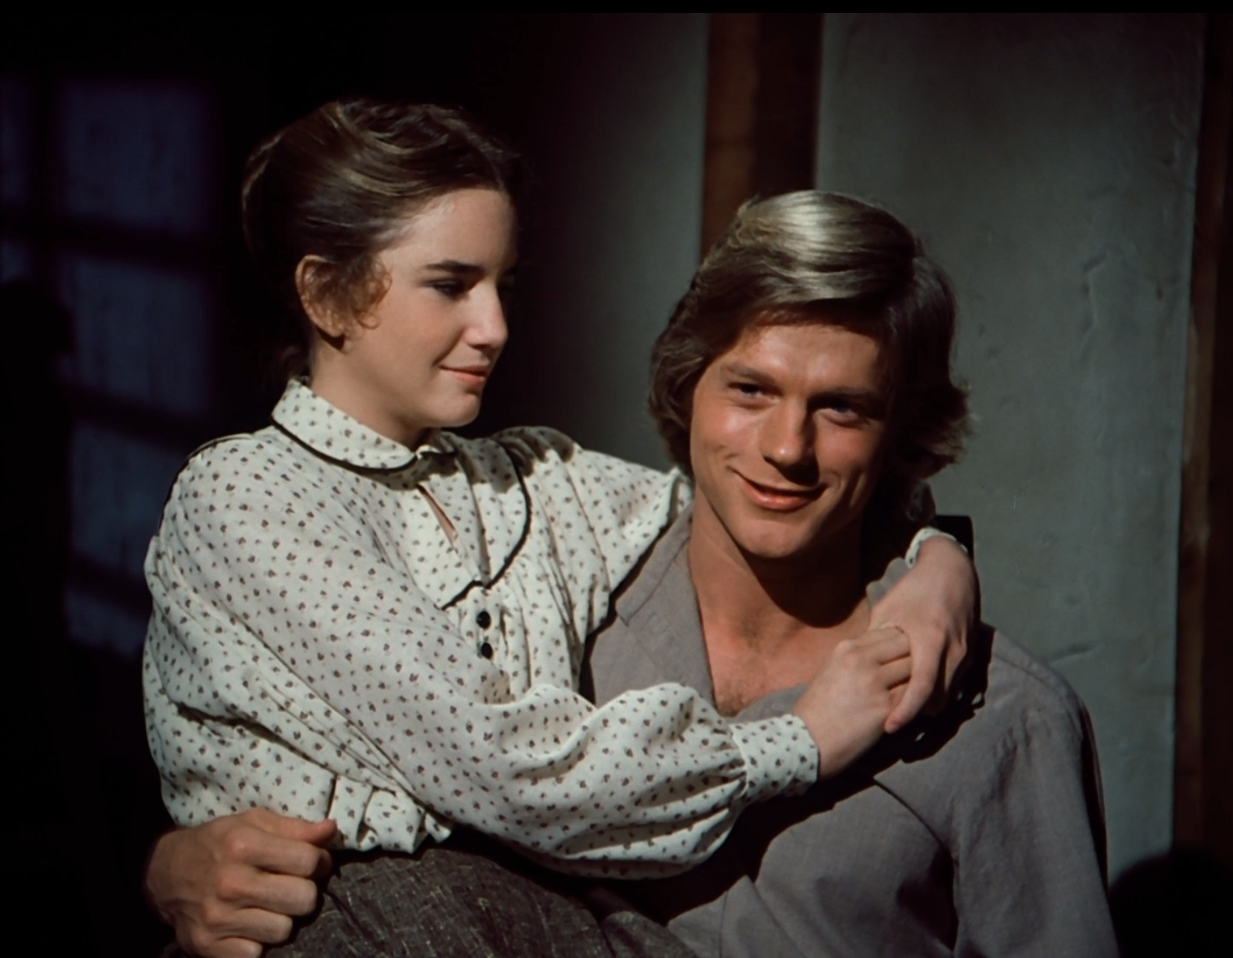 Laura Ingalls on the lap of Almanzo in the show Little House on the Prairie